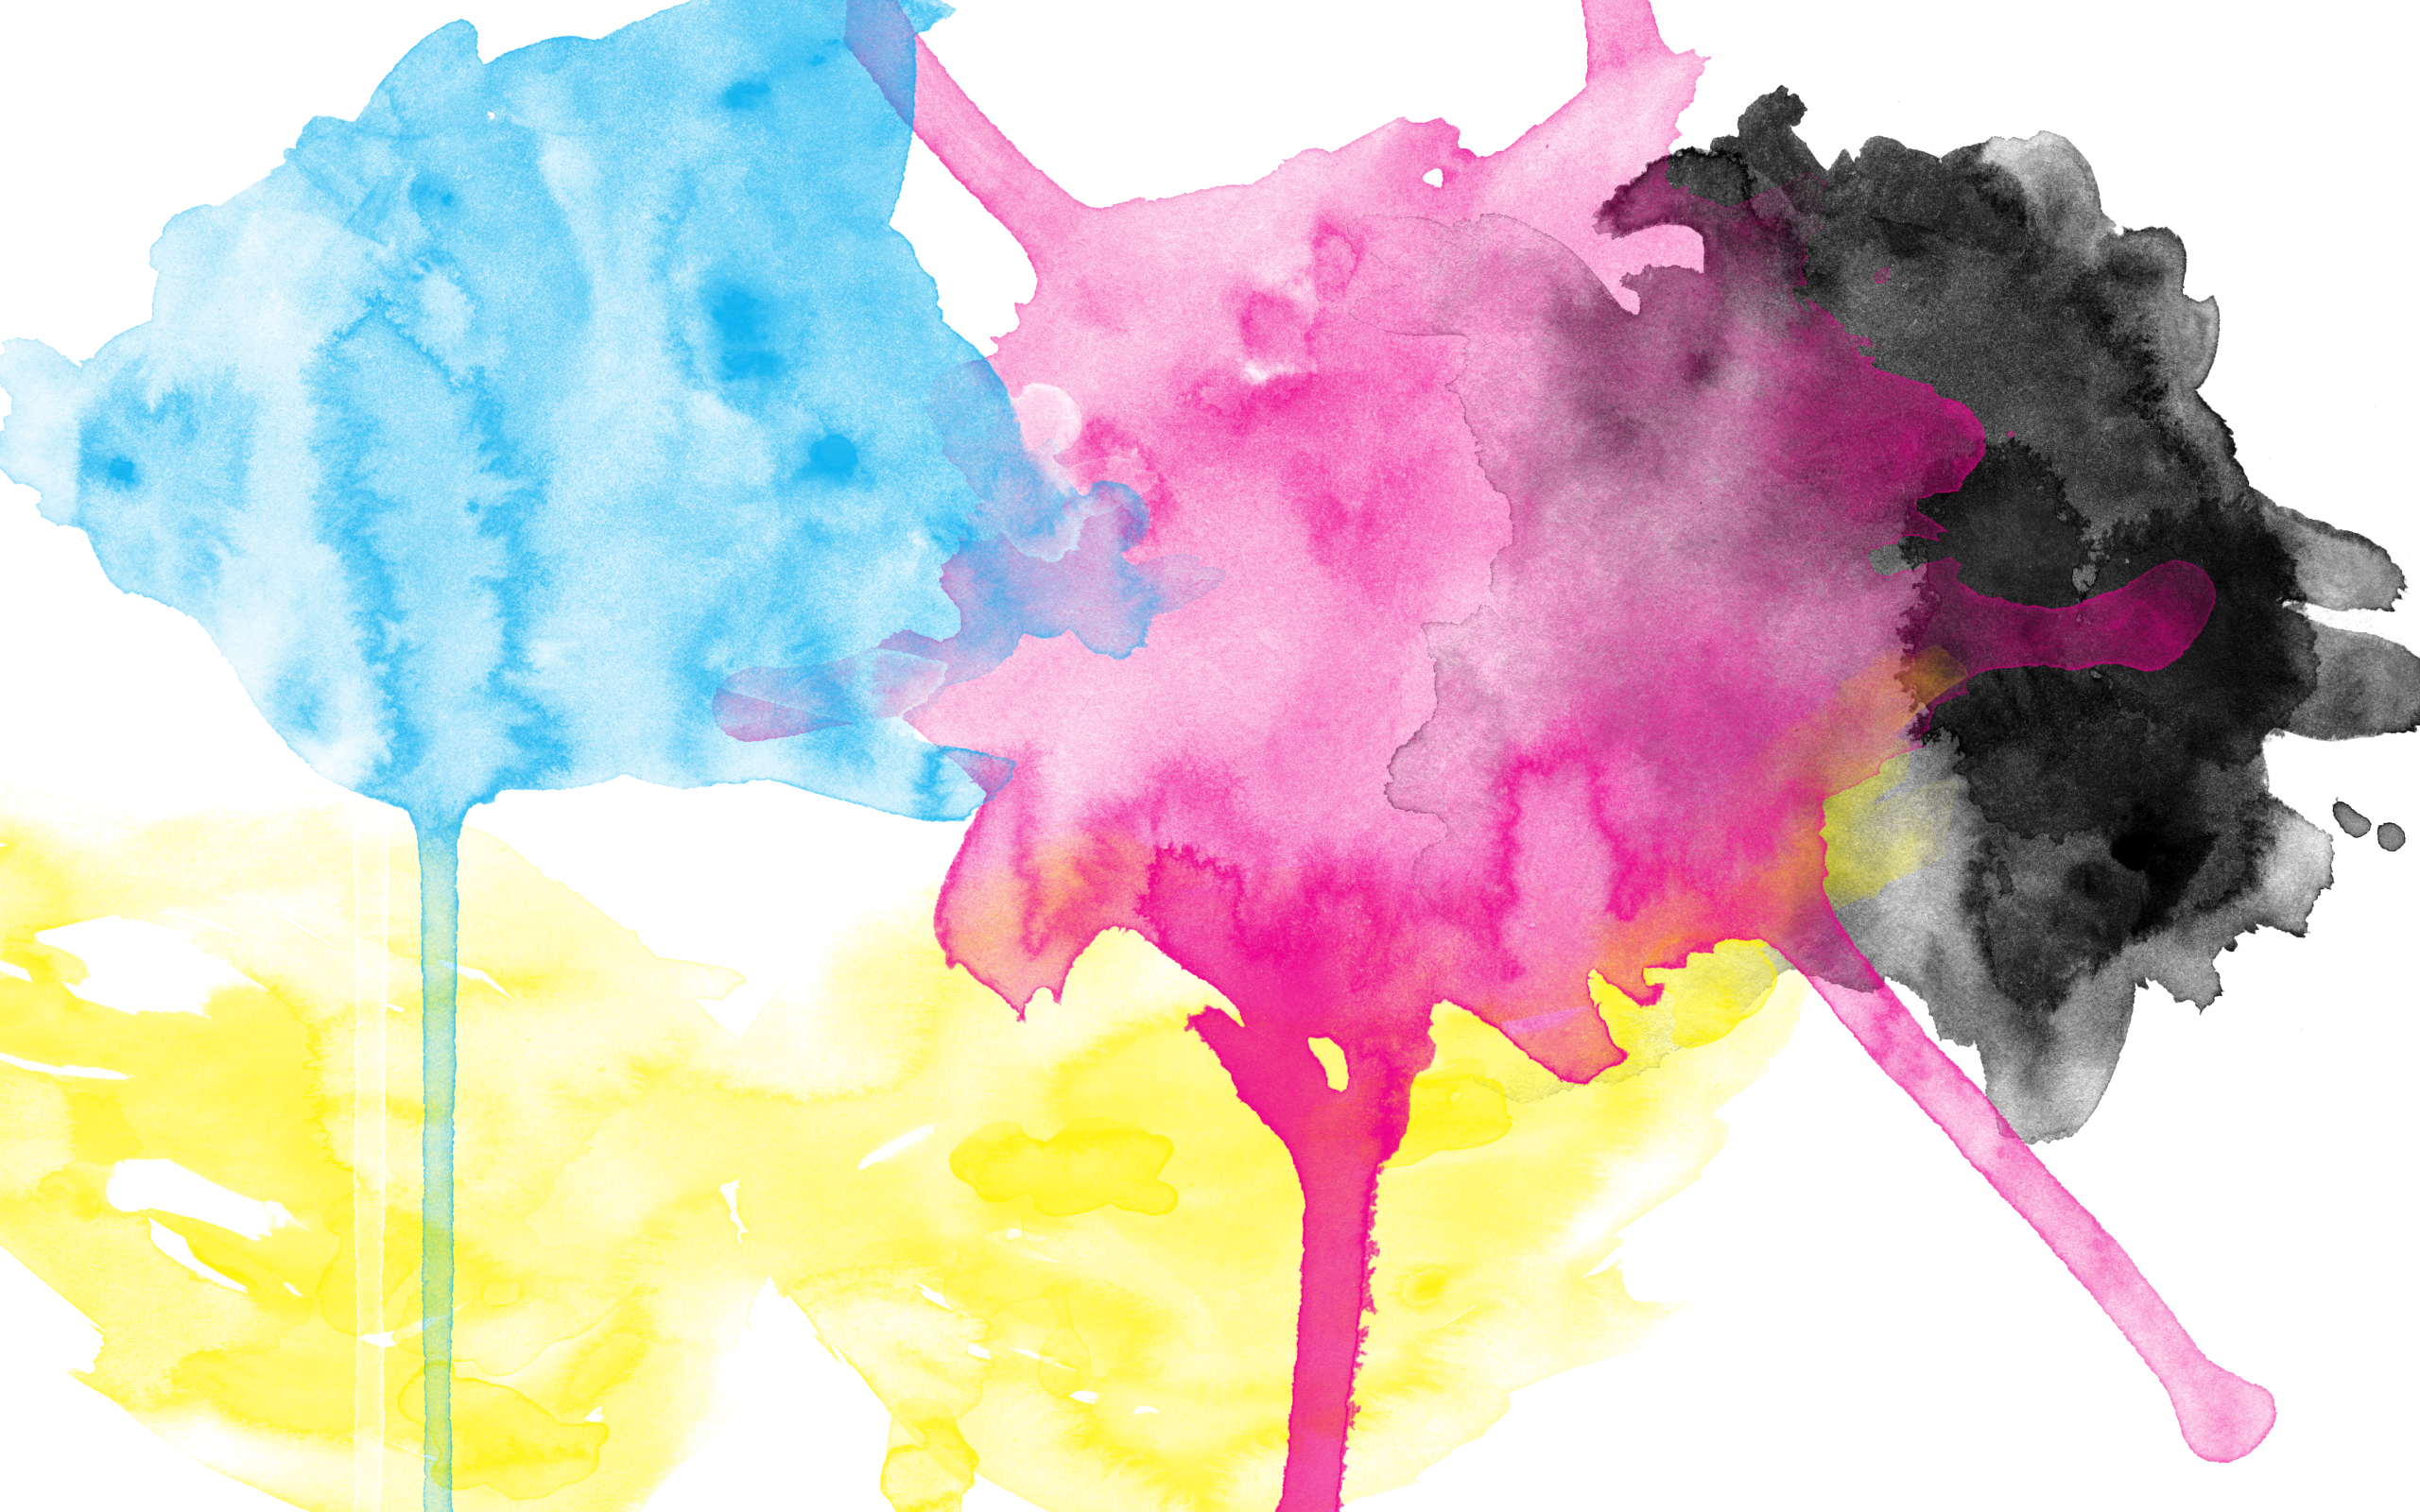 cmyk watercolor wallpaper by brianlechthaler on deviantart